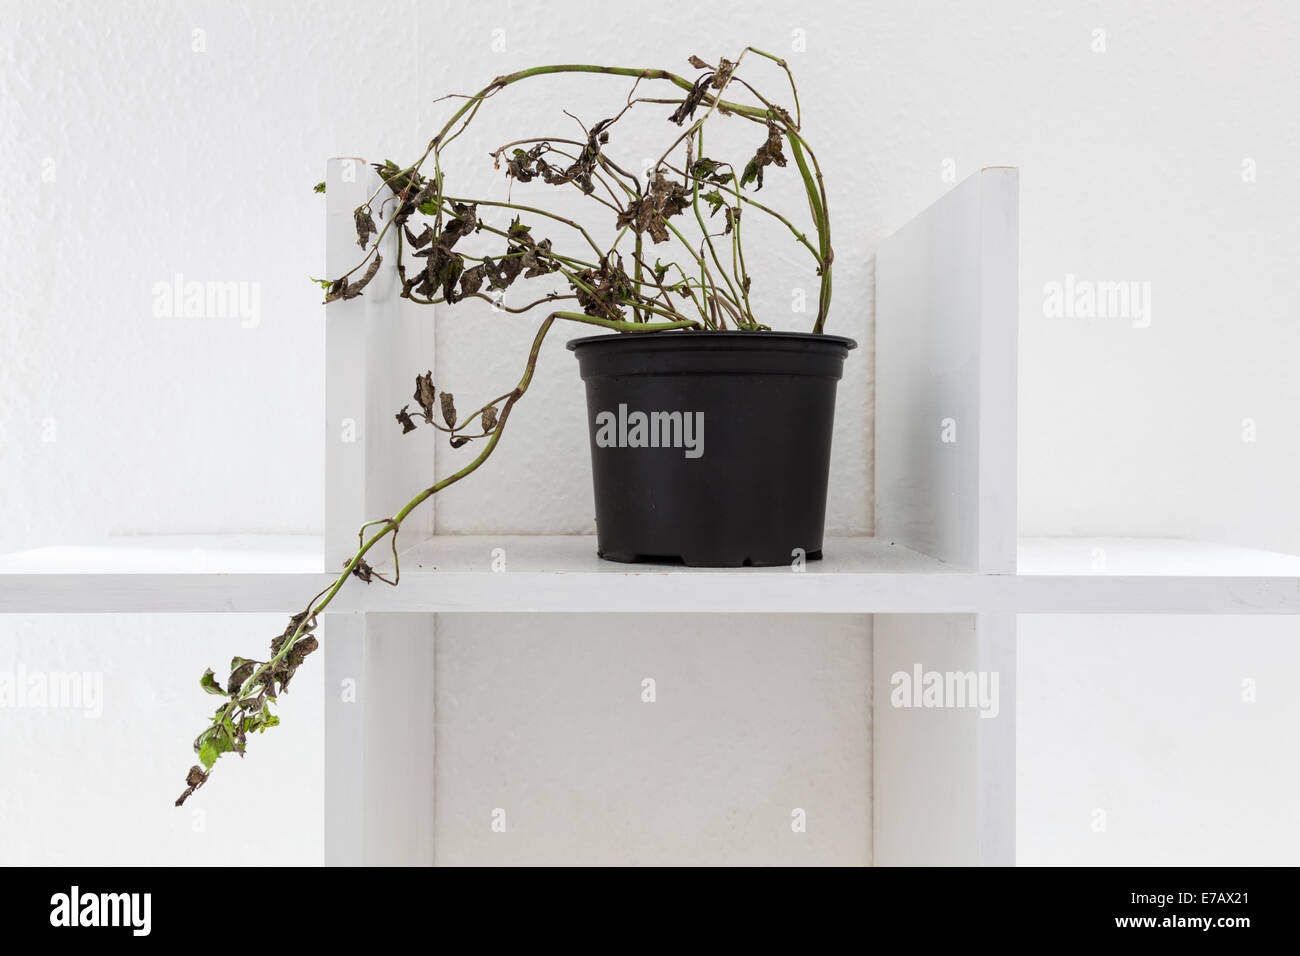 Almost dead or dying plant in a pot on a plain white shelf - Stock Image